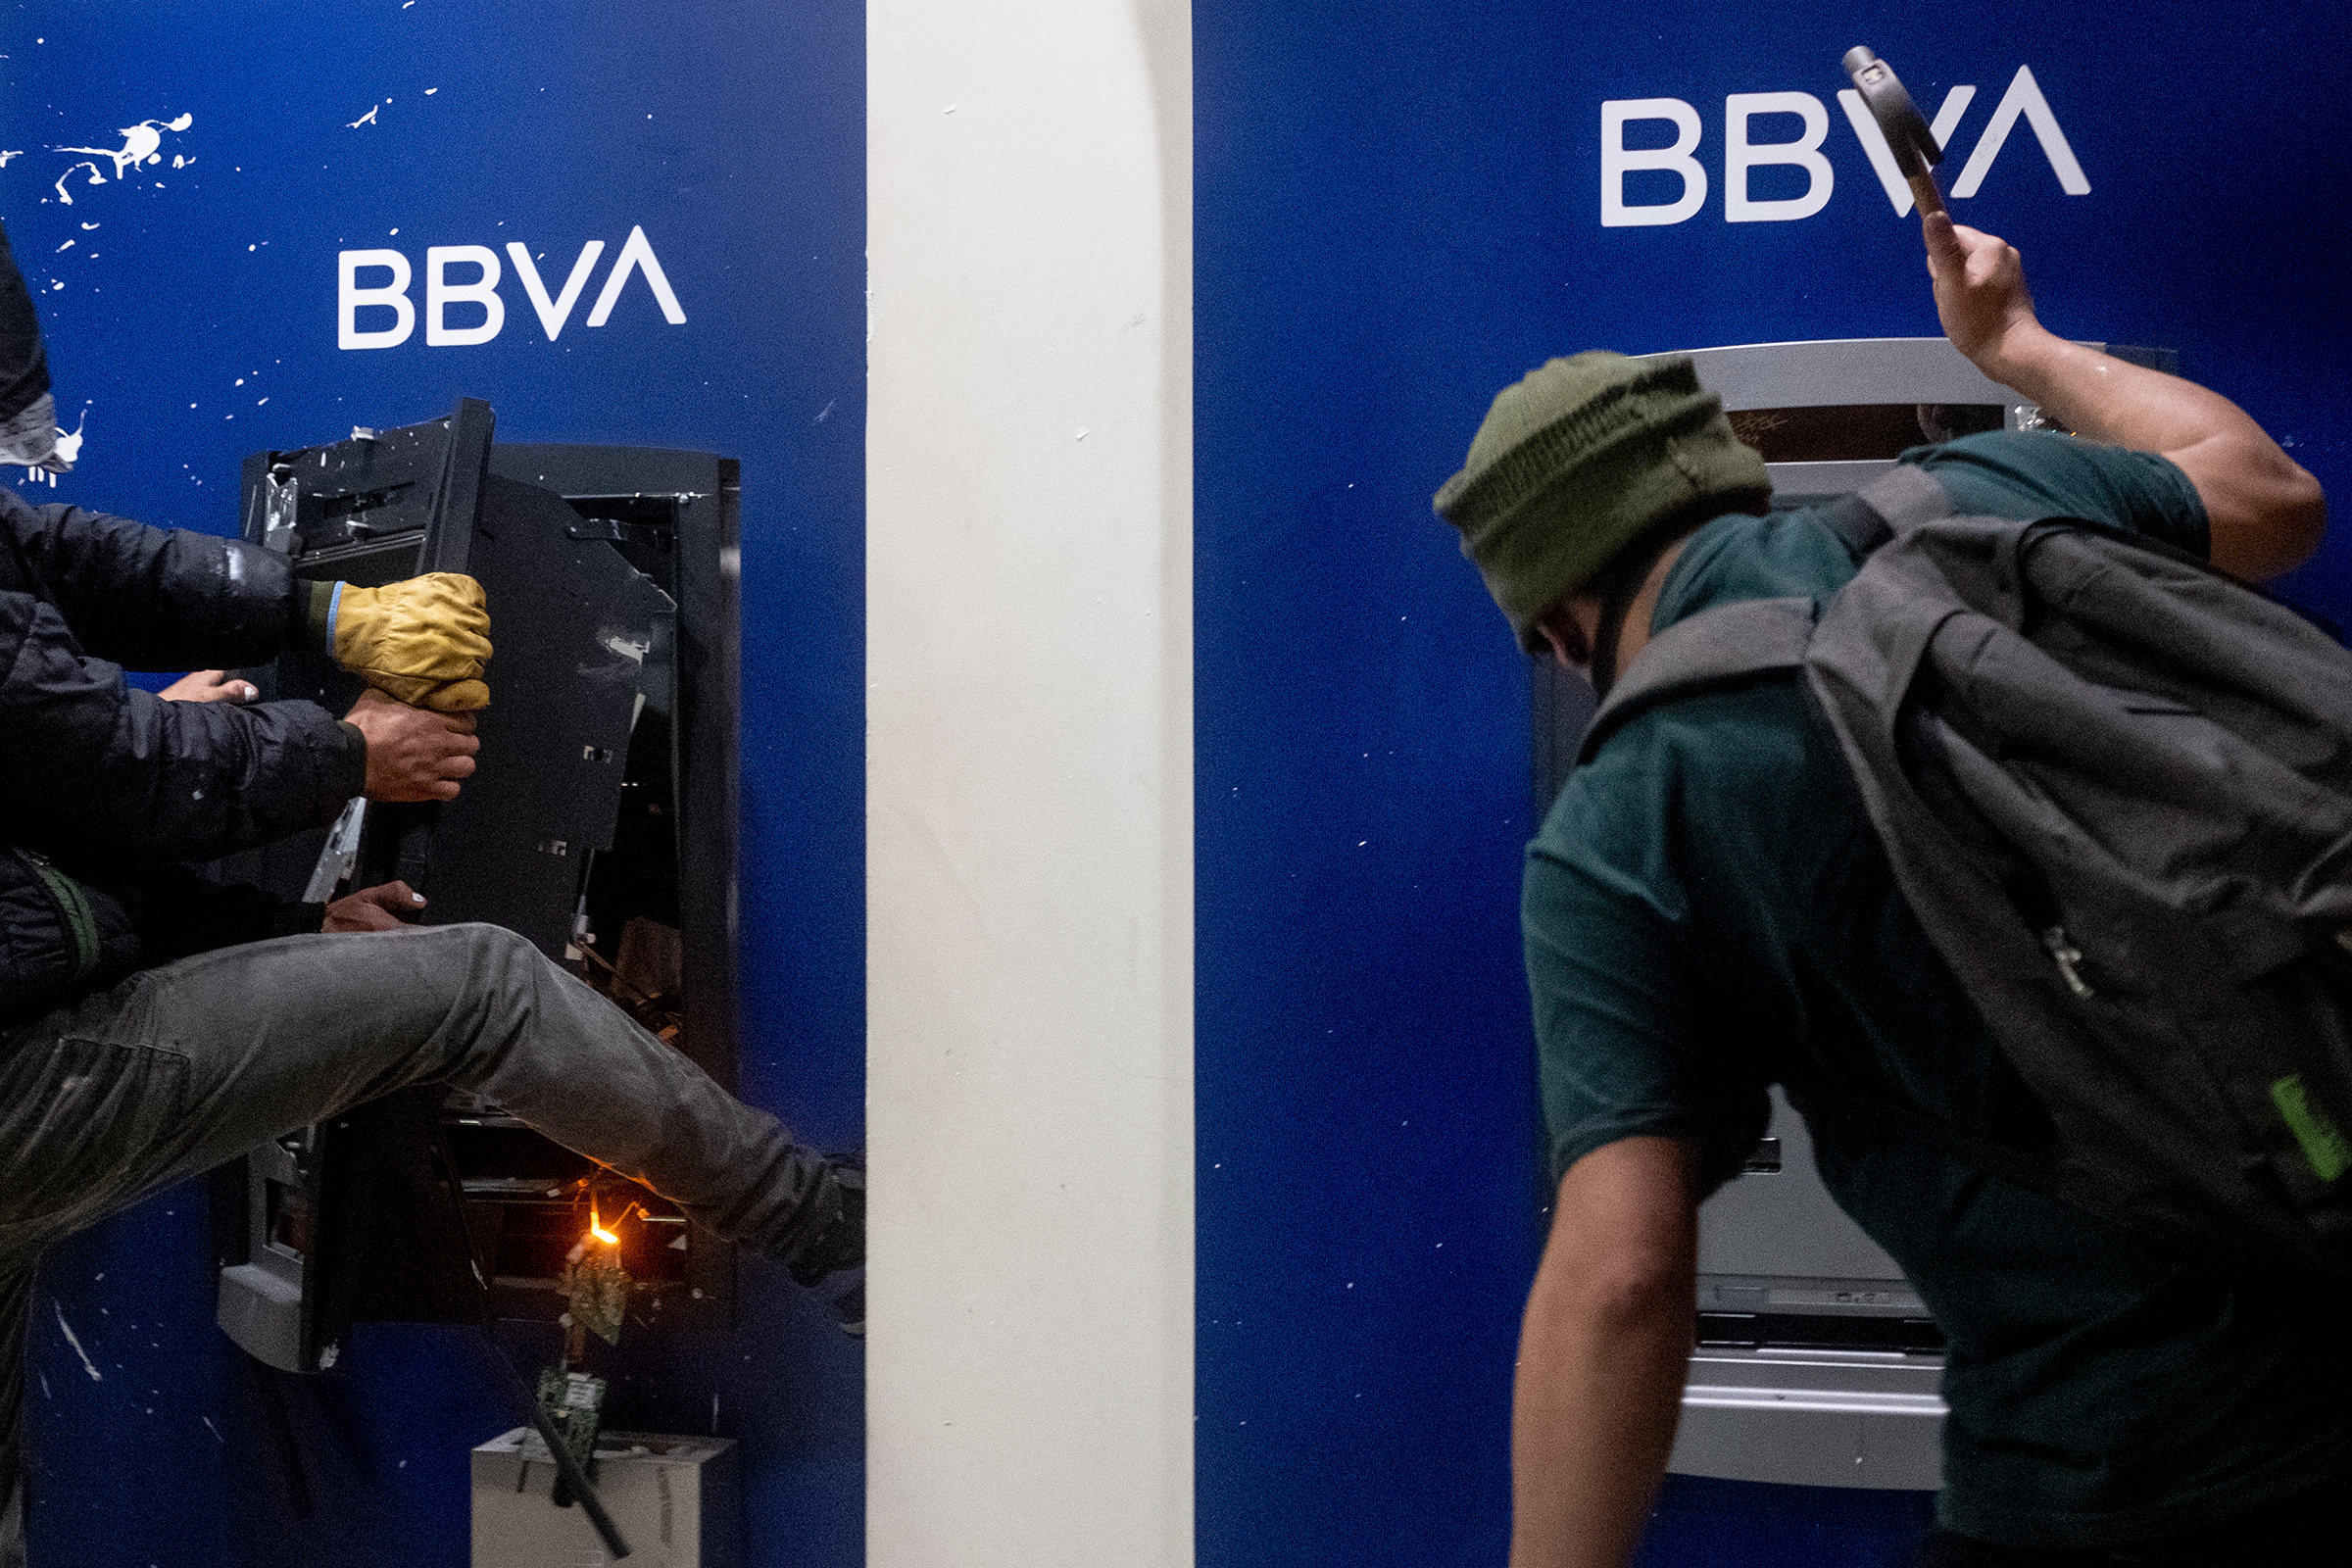 A group of protesters destroy bank ATMs amid protests in Bogotá on May 1.